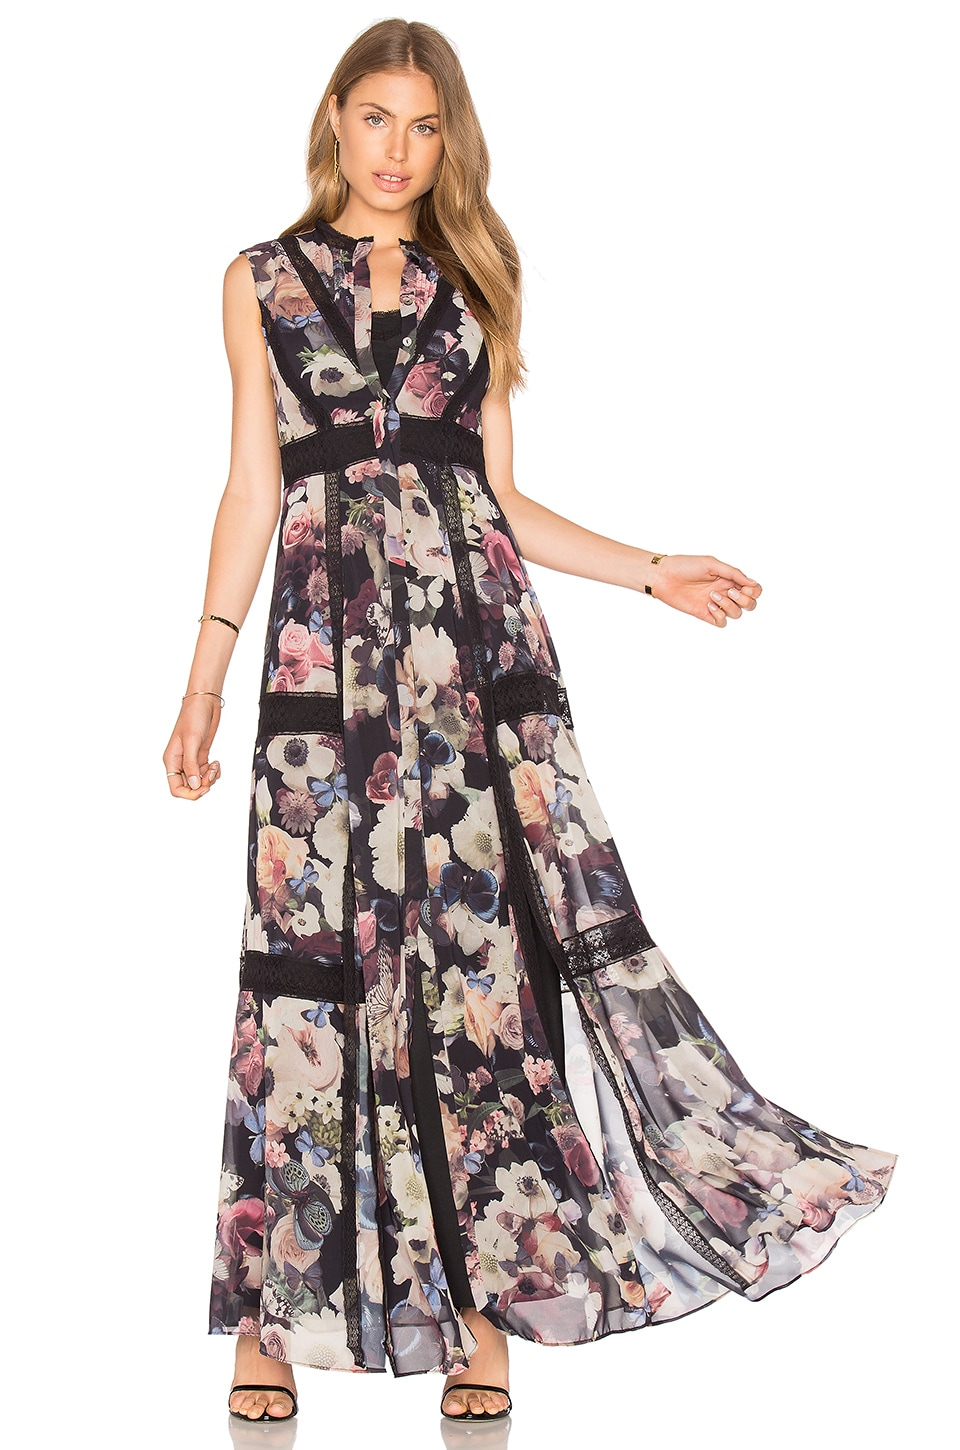 Needle & Thread Sleeveless Butterfly Gown in Butterfly Fairytale Print